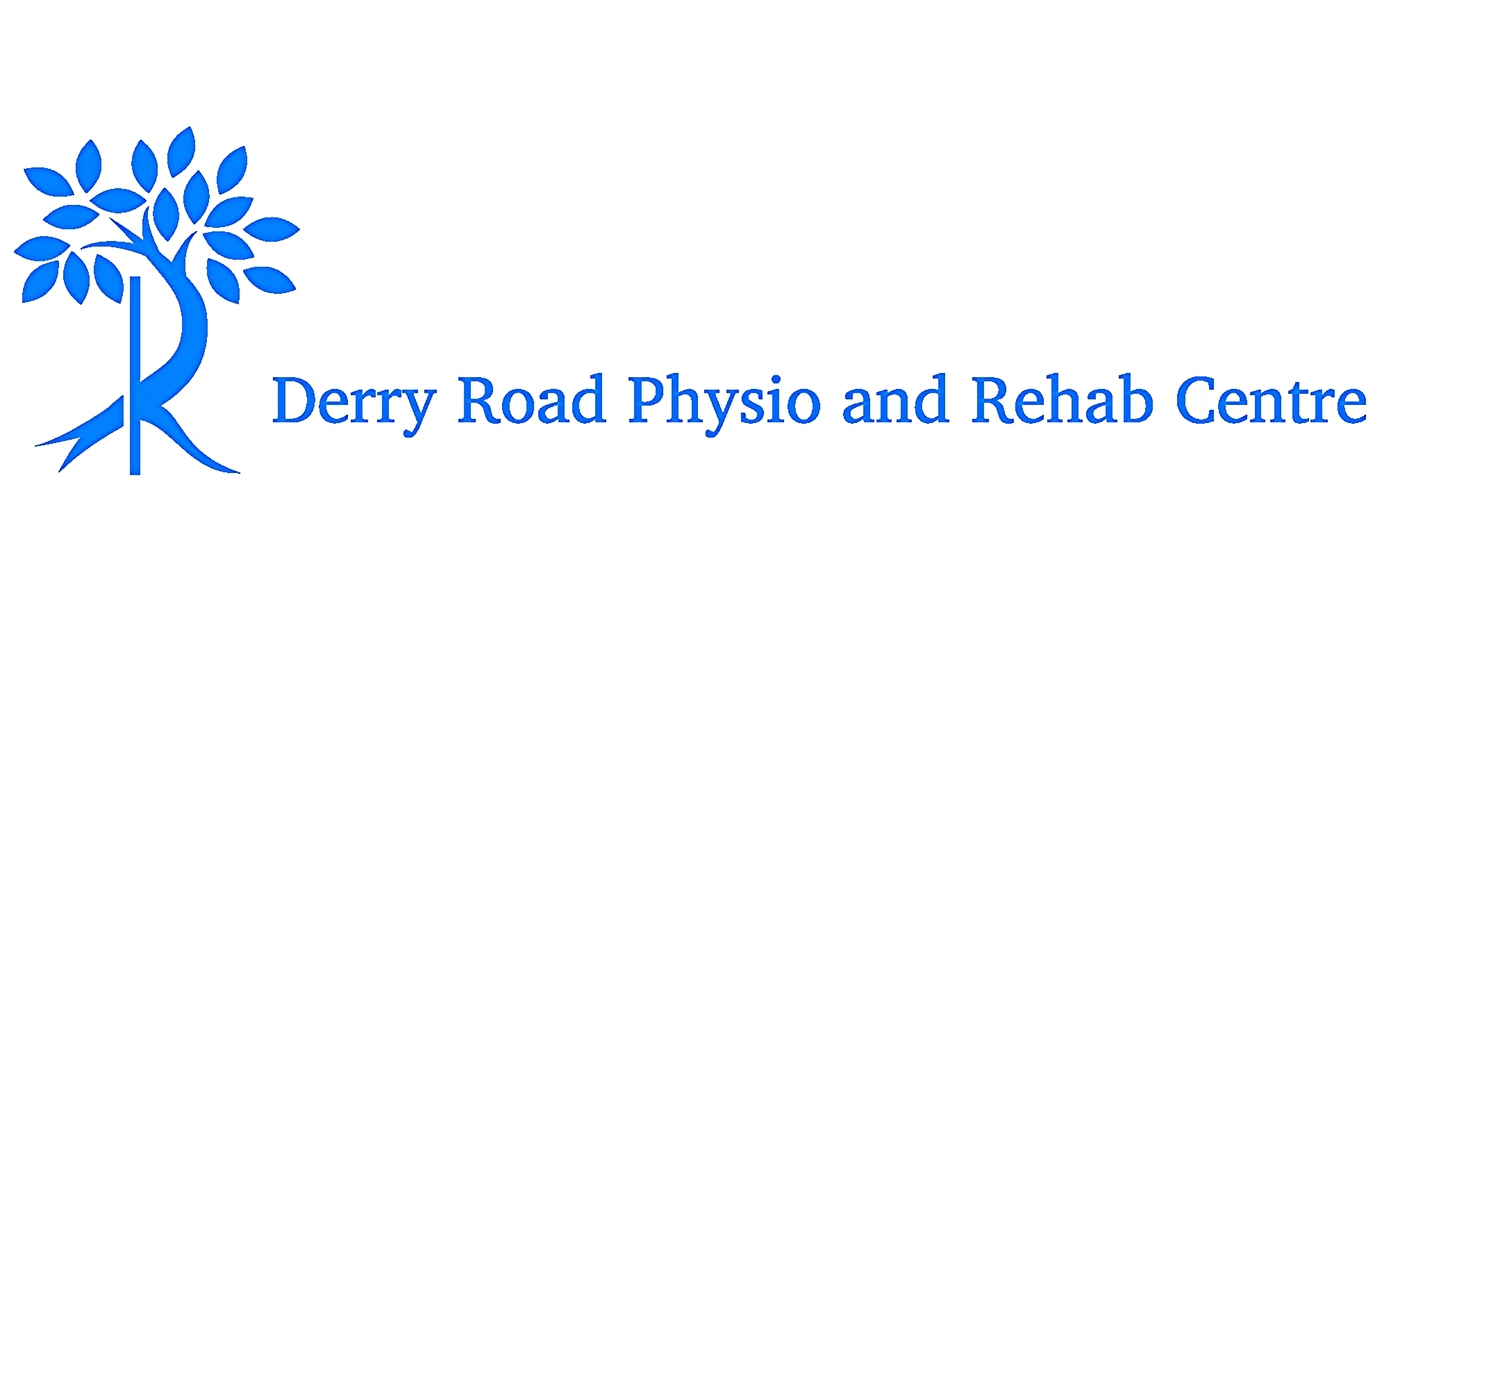 Derry Road Physiotherapy and Rehabilitation Centre